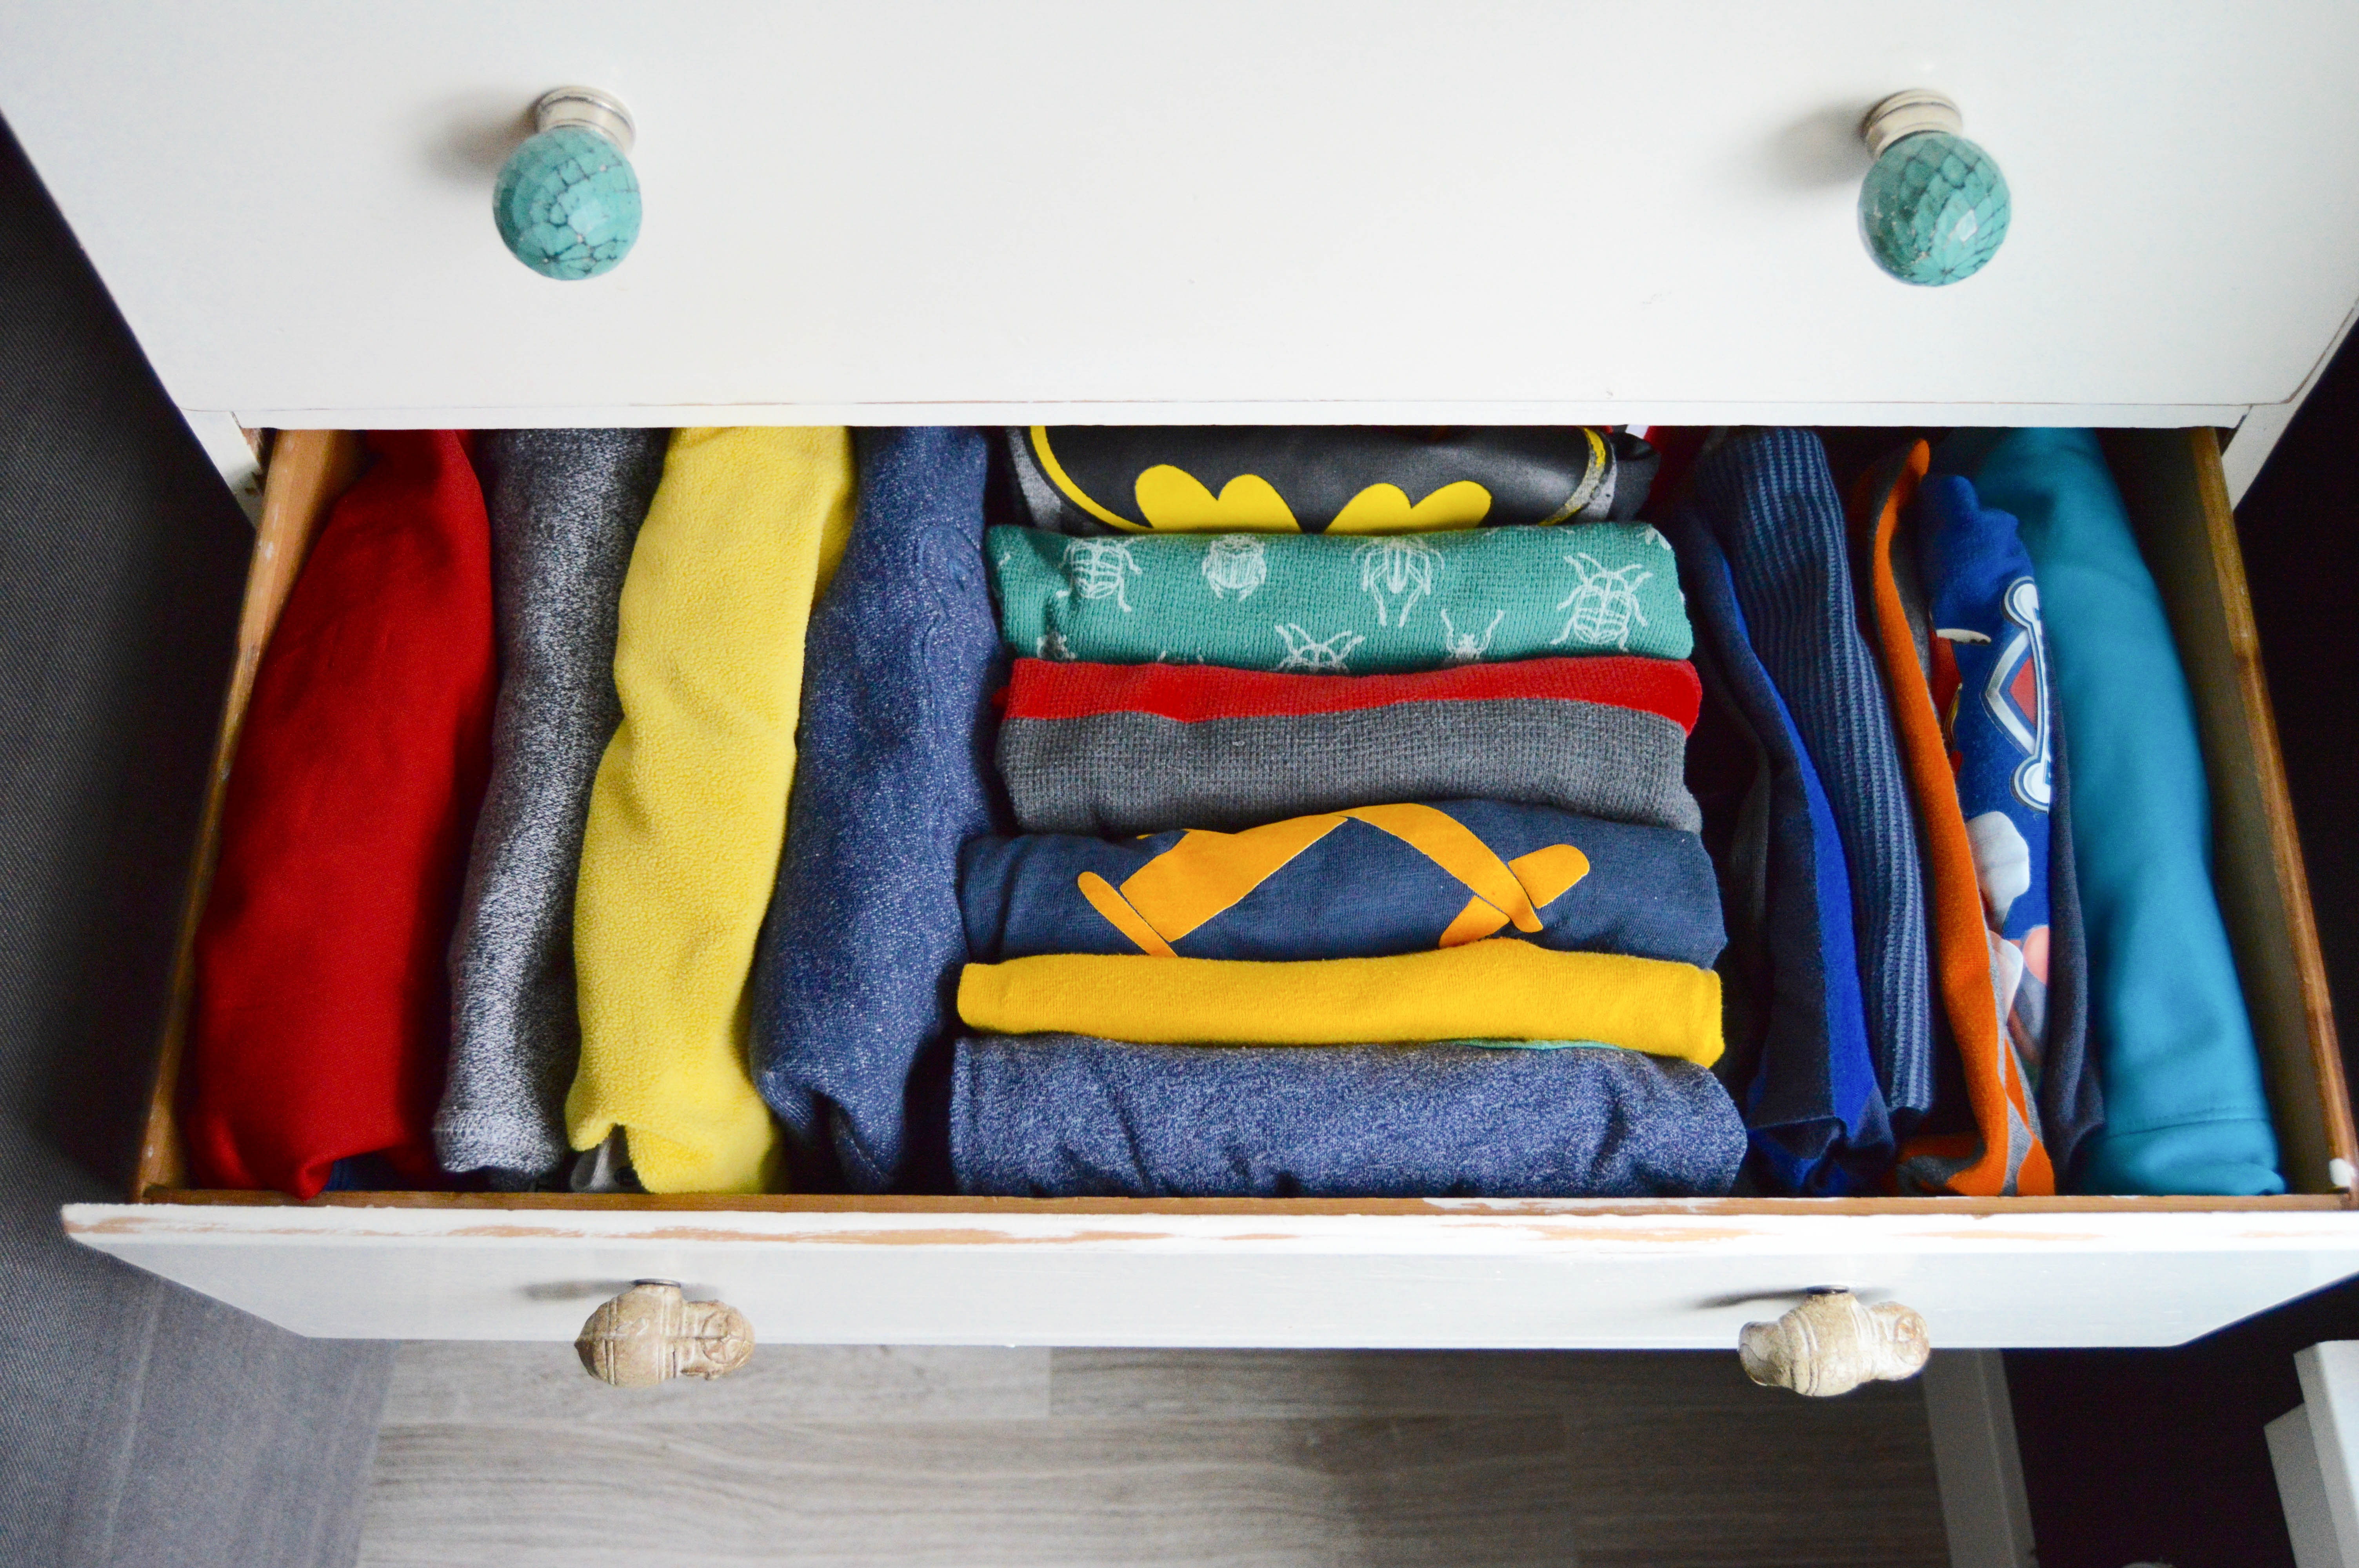 Tips for how to purge and organize your home like a pro. Organizing steps: categorizing and finding homes for things. 5 home organizing rules to live by. Kid clothes in a drawer